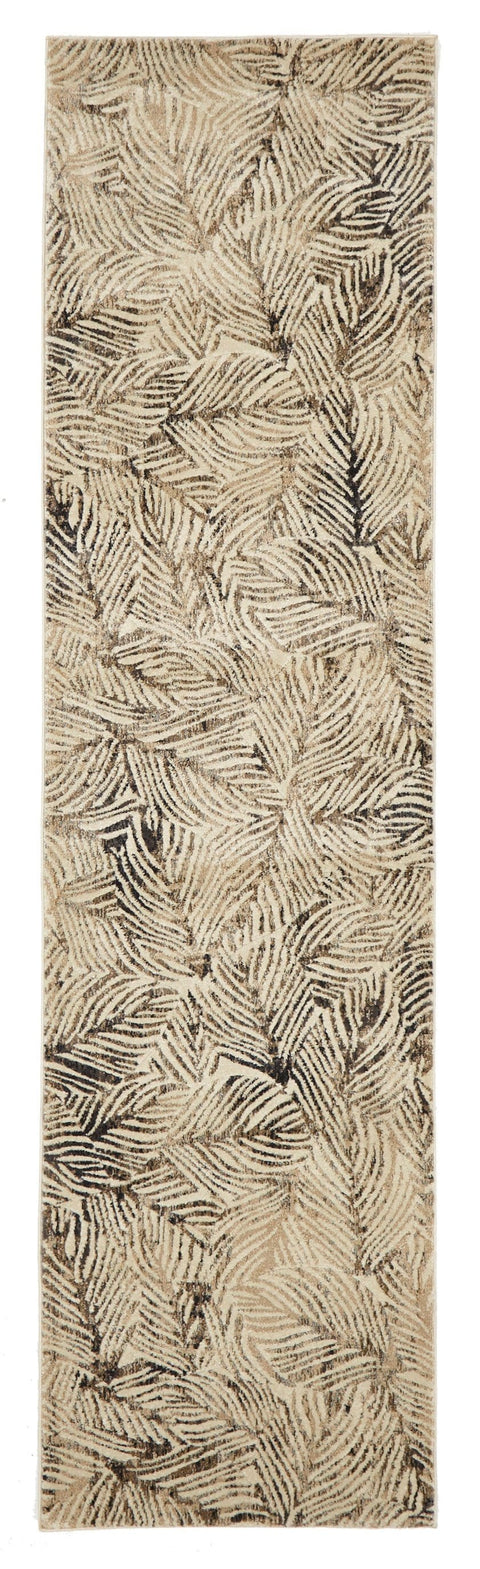 Sola Abstract Print Transitional Runner Rug